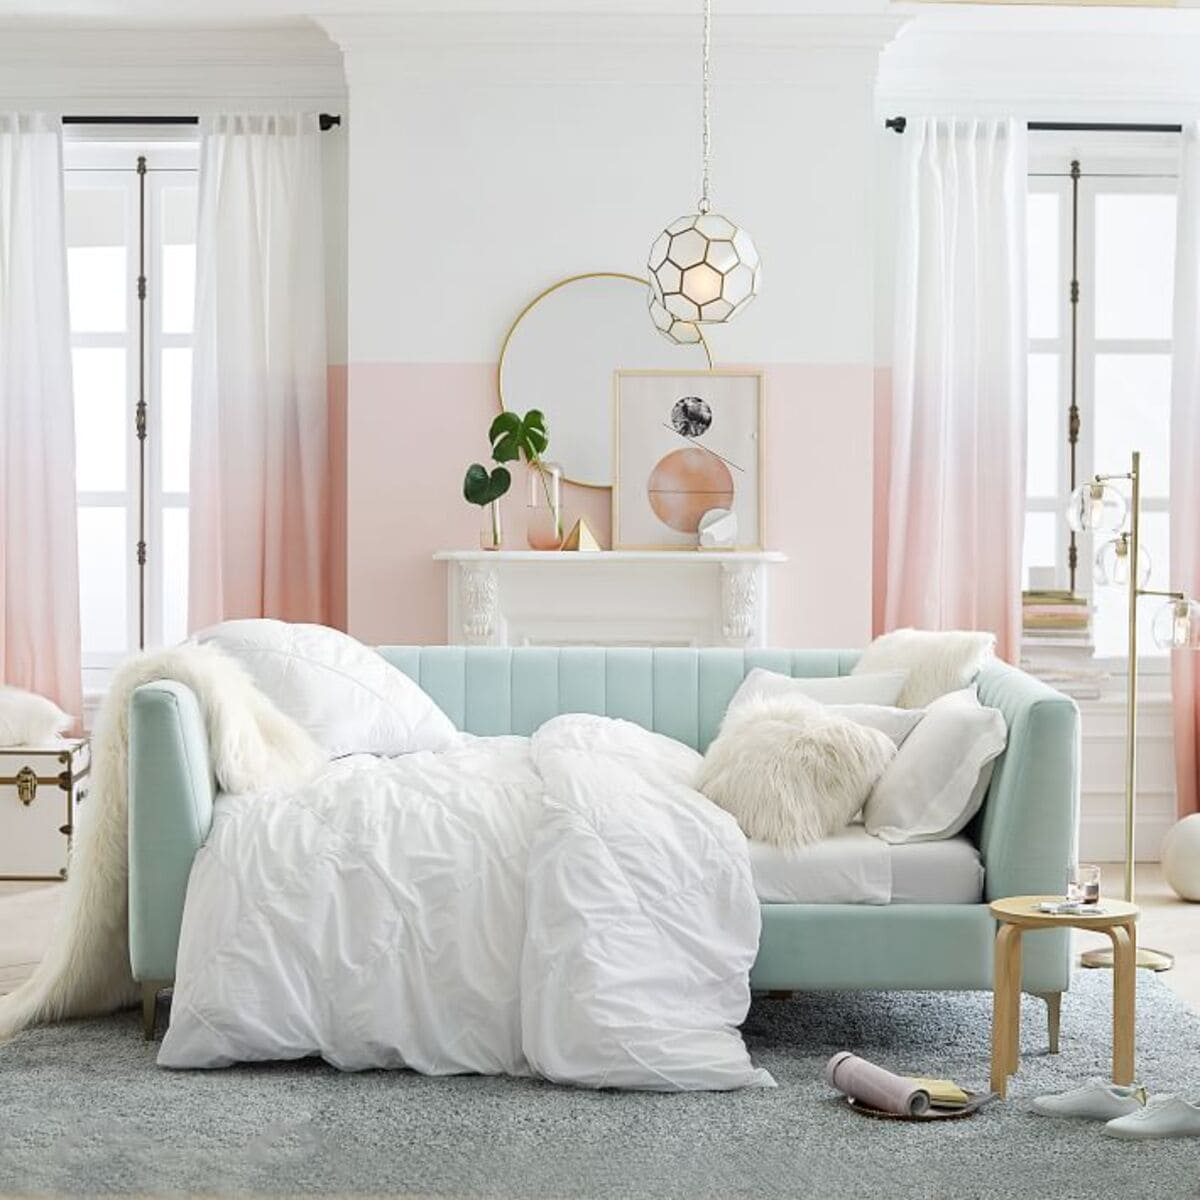 daybed 9 - 20 delightful daybeds that easily convert into comfortable beds